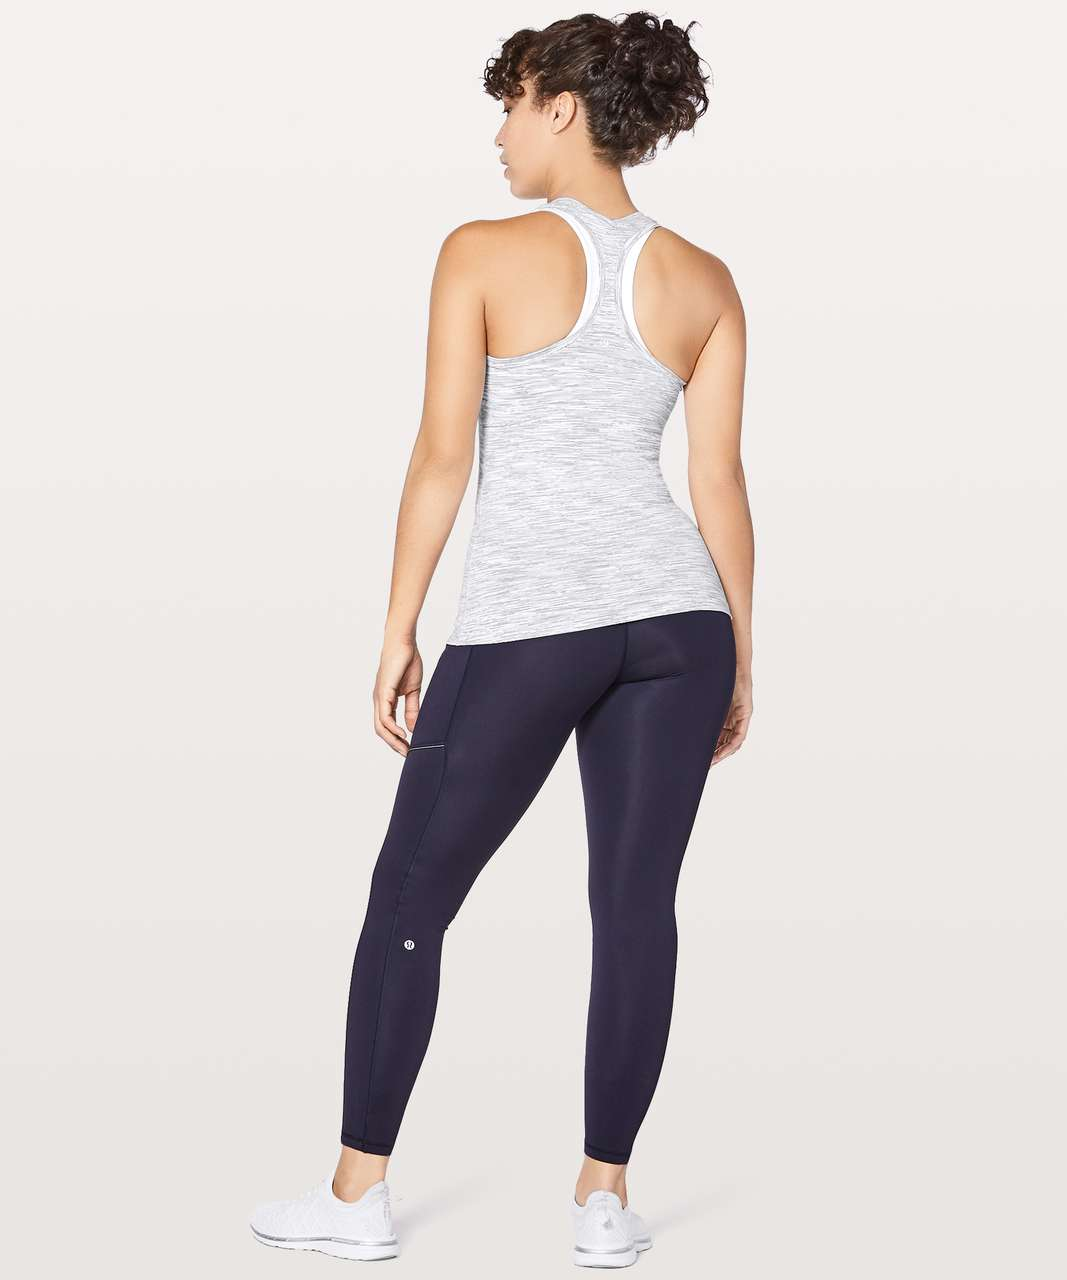 Lululemon Cool Racerback II - Wee Are From Space Ice Grey Alpine White